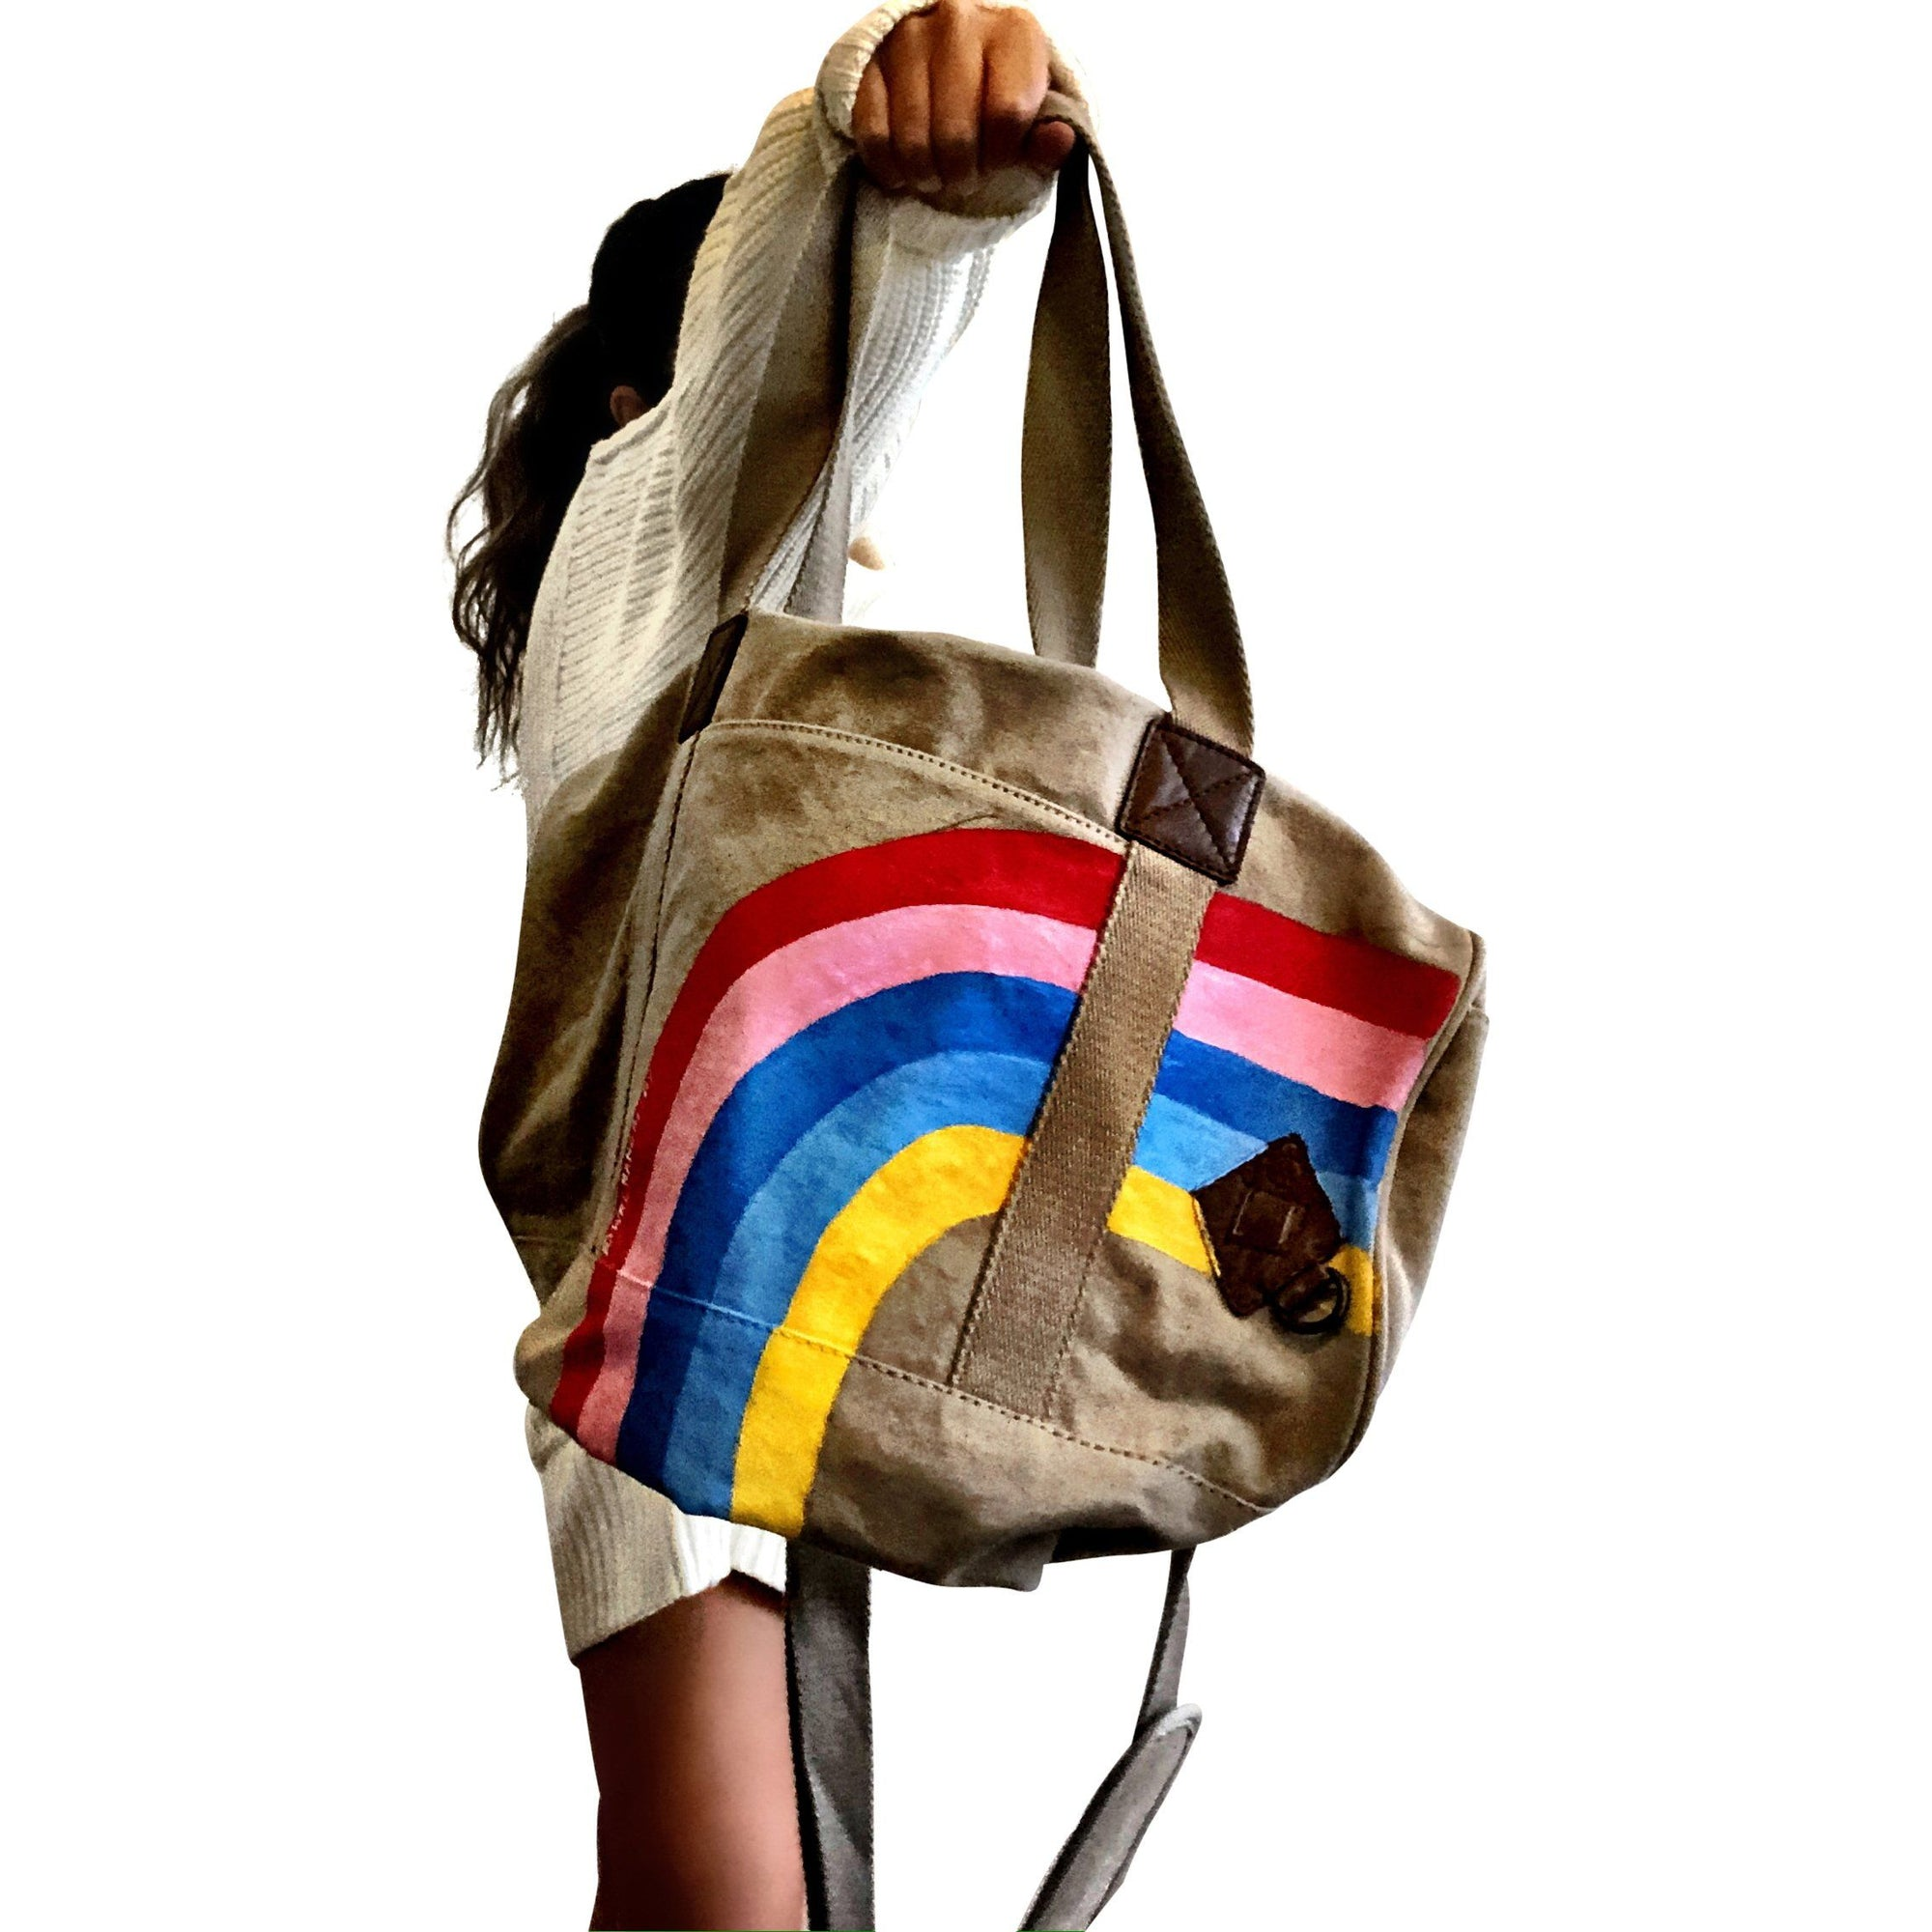 'RAINBOW' DUFFLE BAG